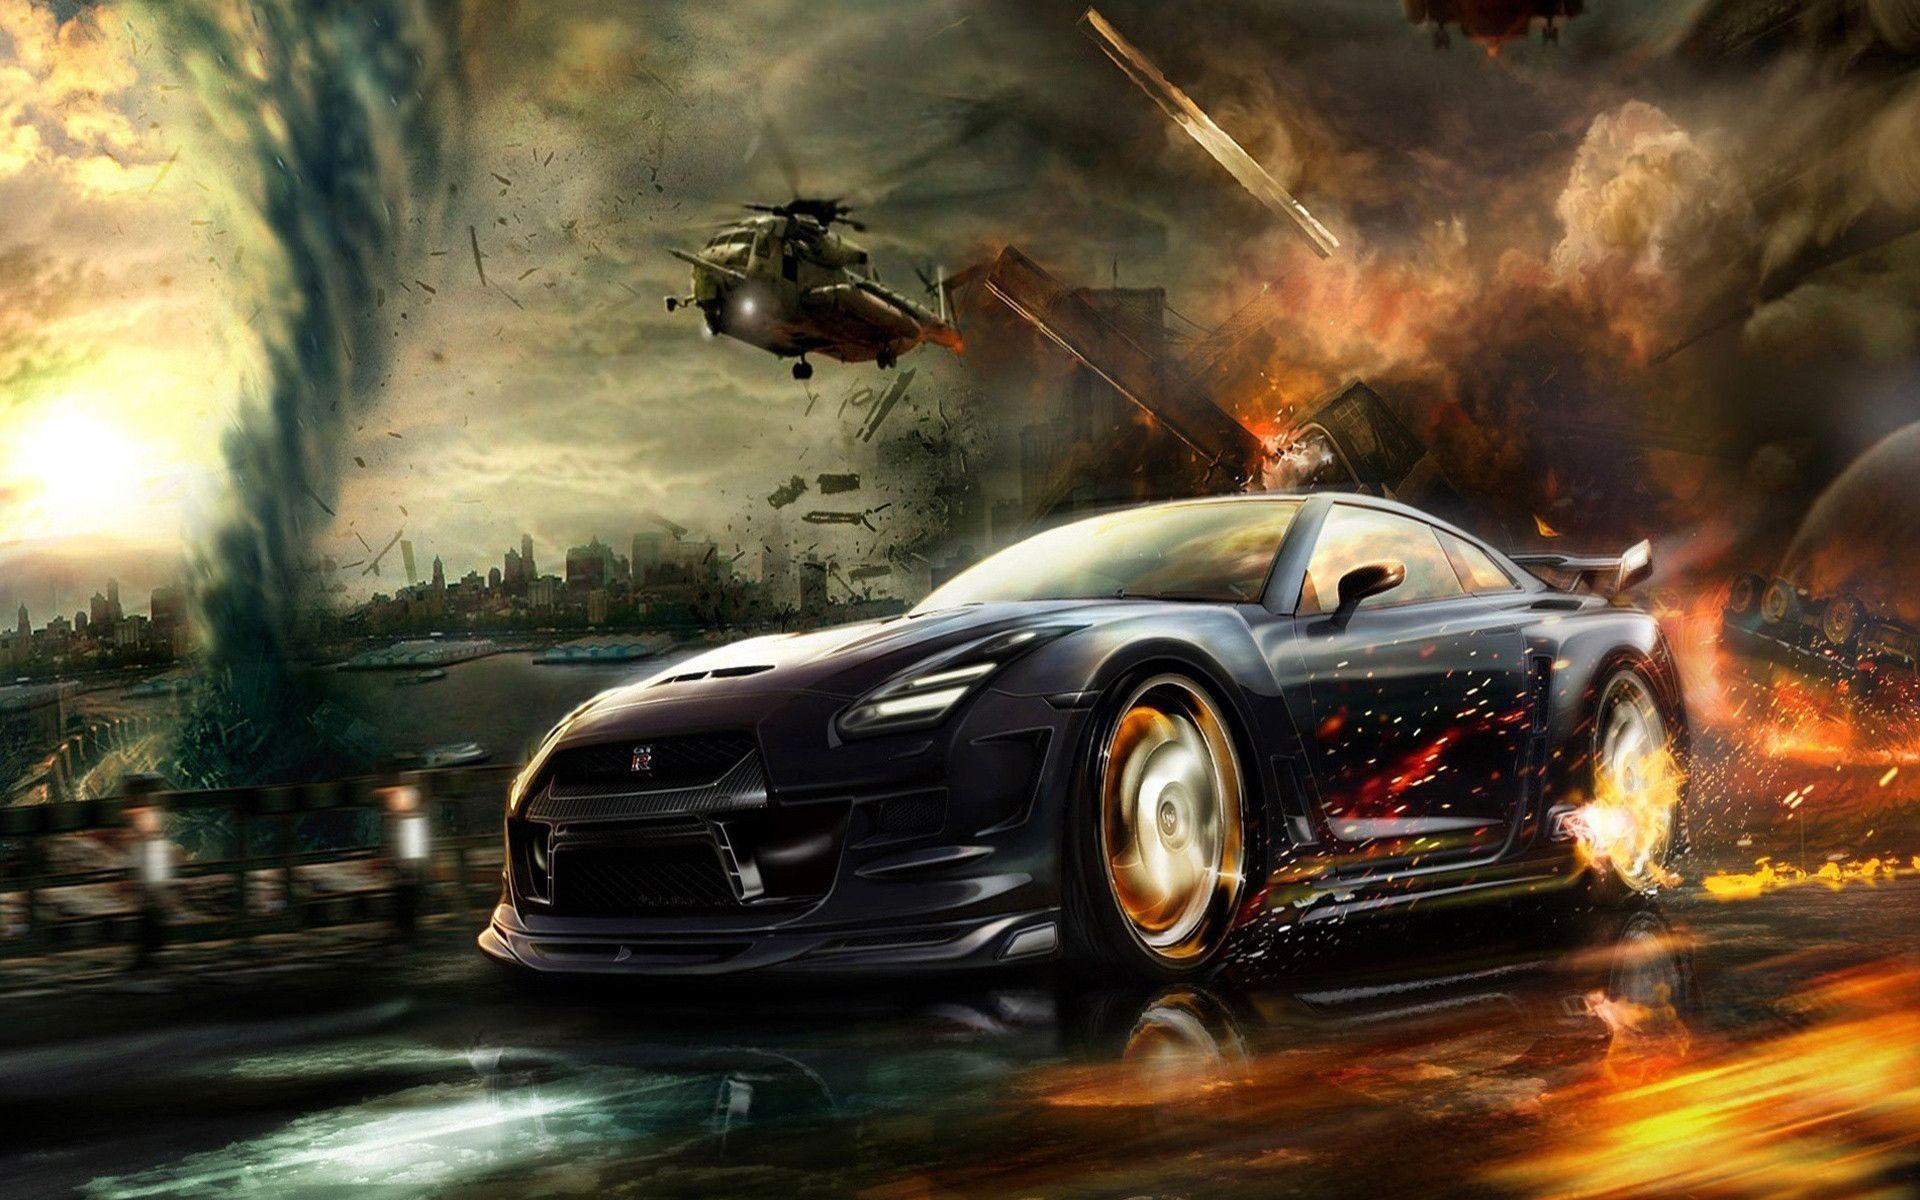 Nissan Gtr Wallpapers - Full HD wallpaper search - page 3